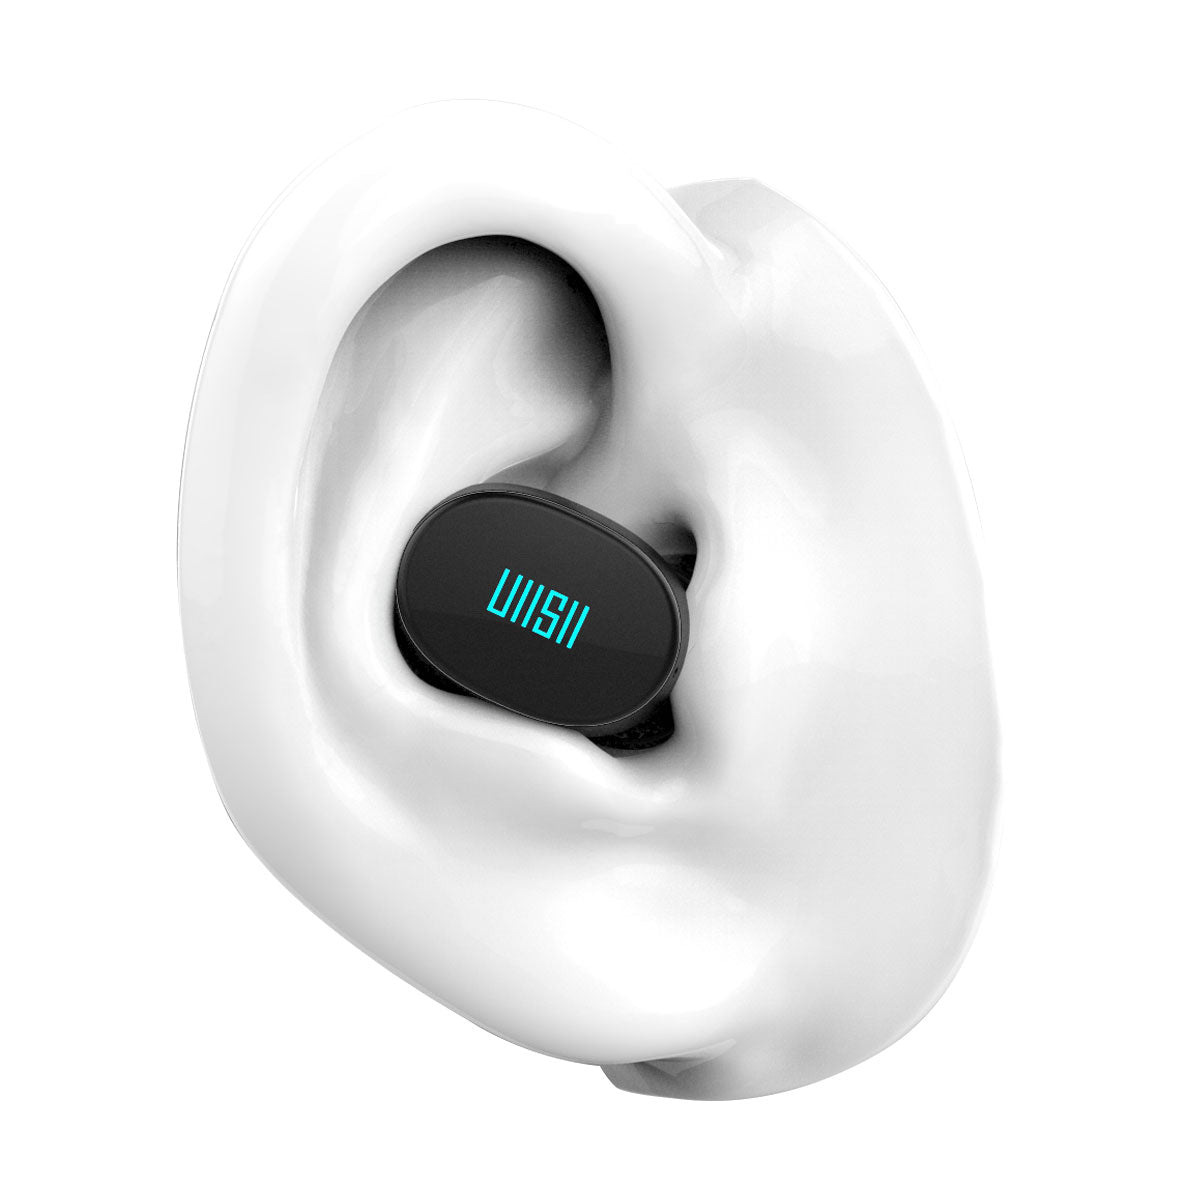 UiiSii TWS16 True Wireless black earbuds